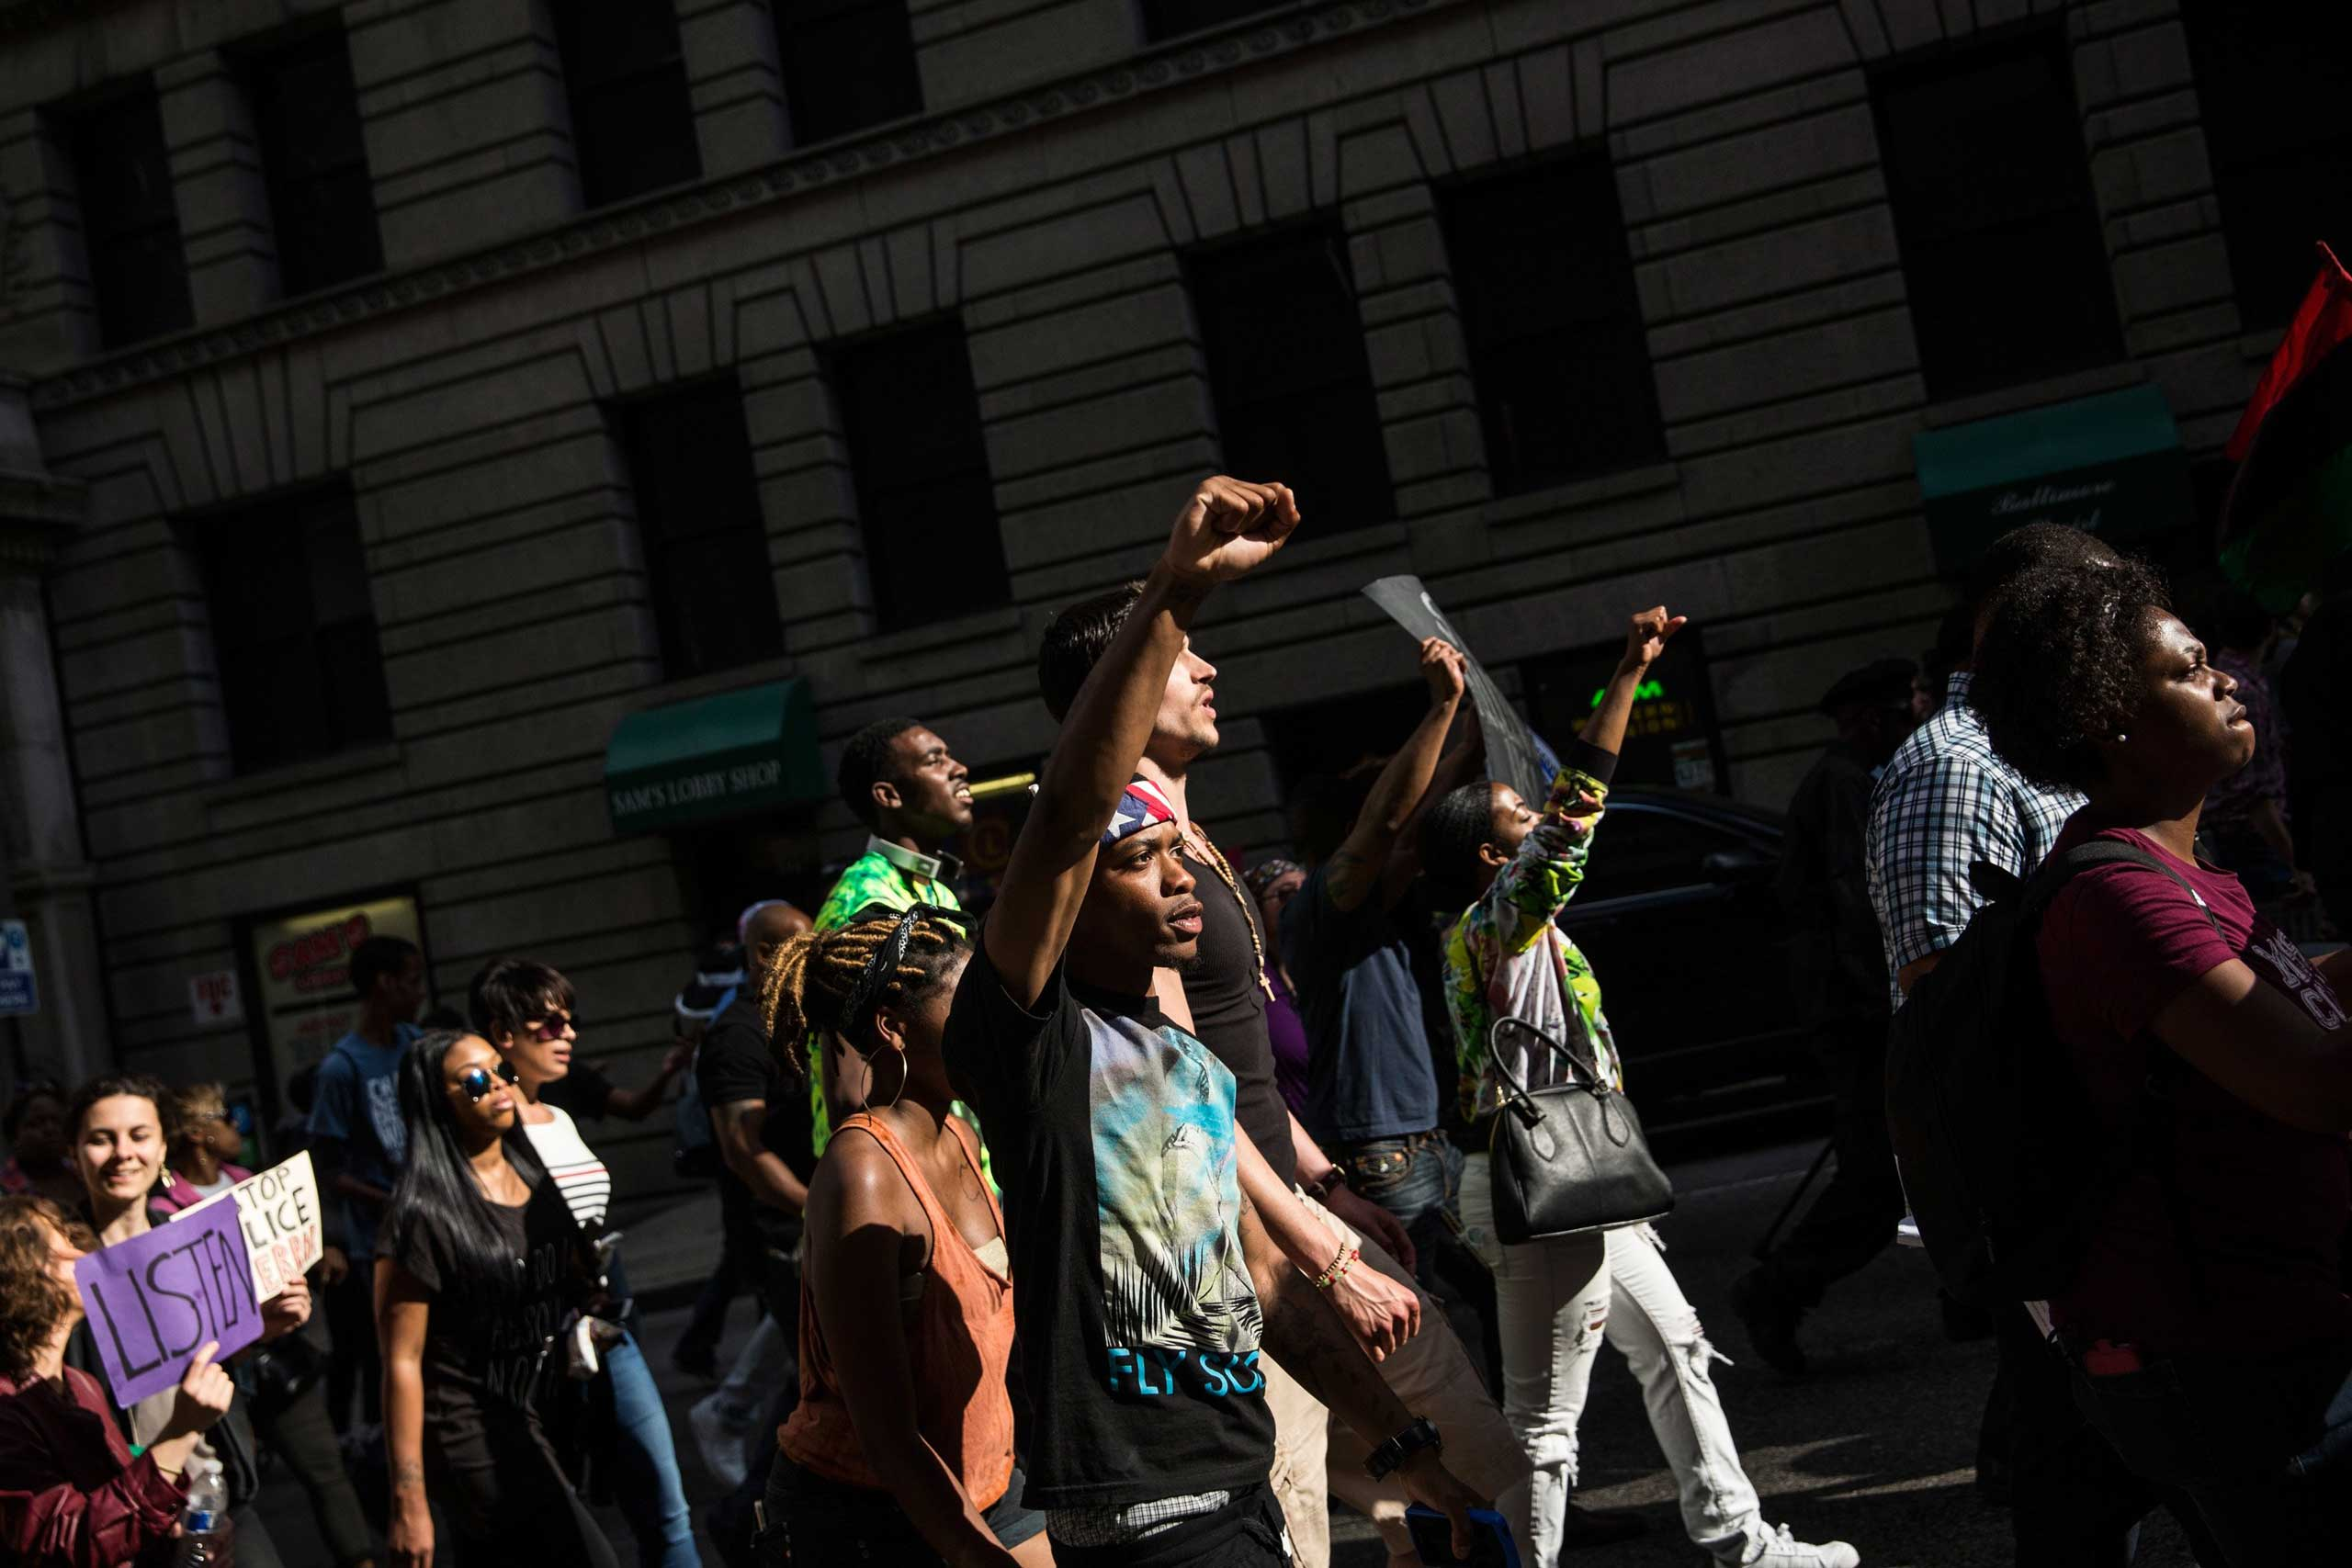 Protesters march from City hall to the Sandtown neighborhood in Baltimore on May 2, 2015.